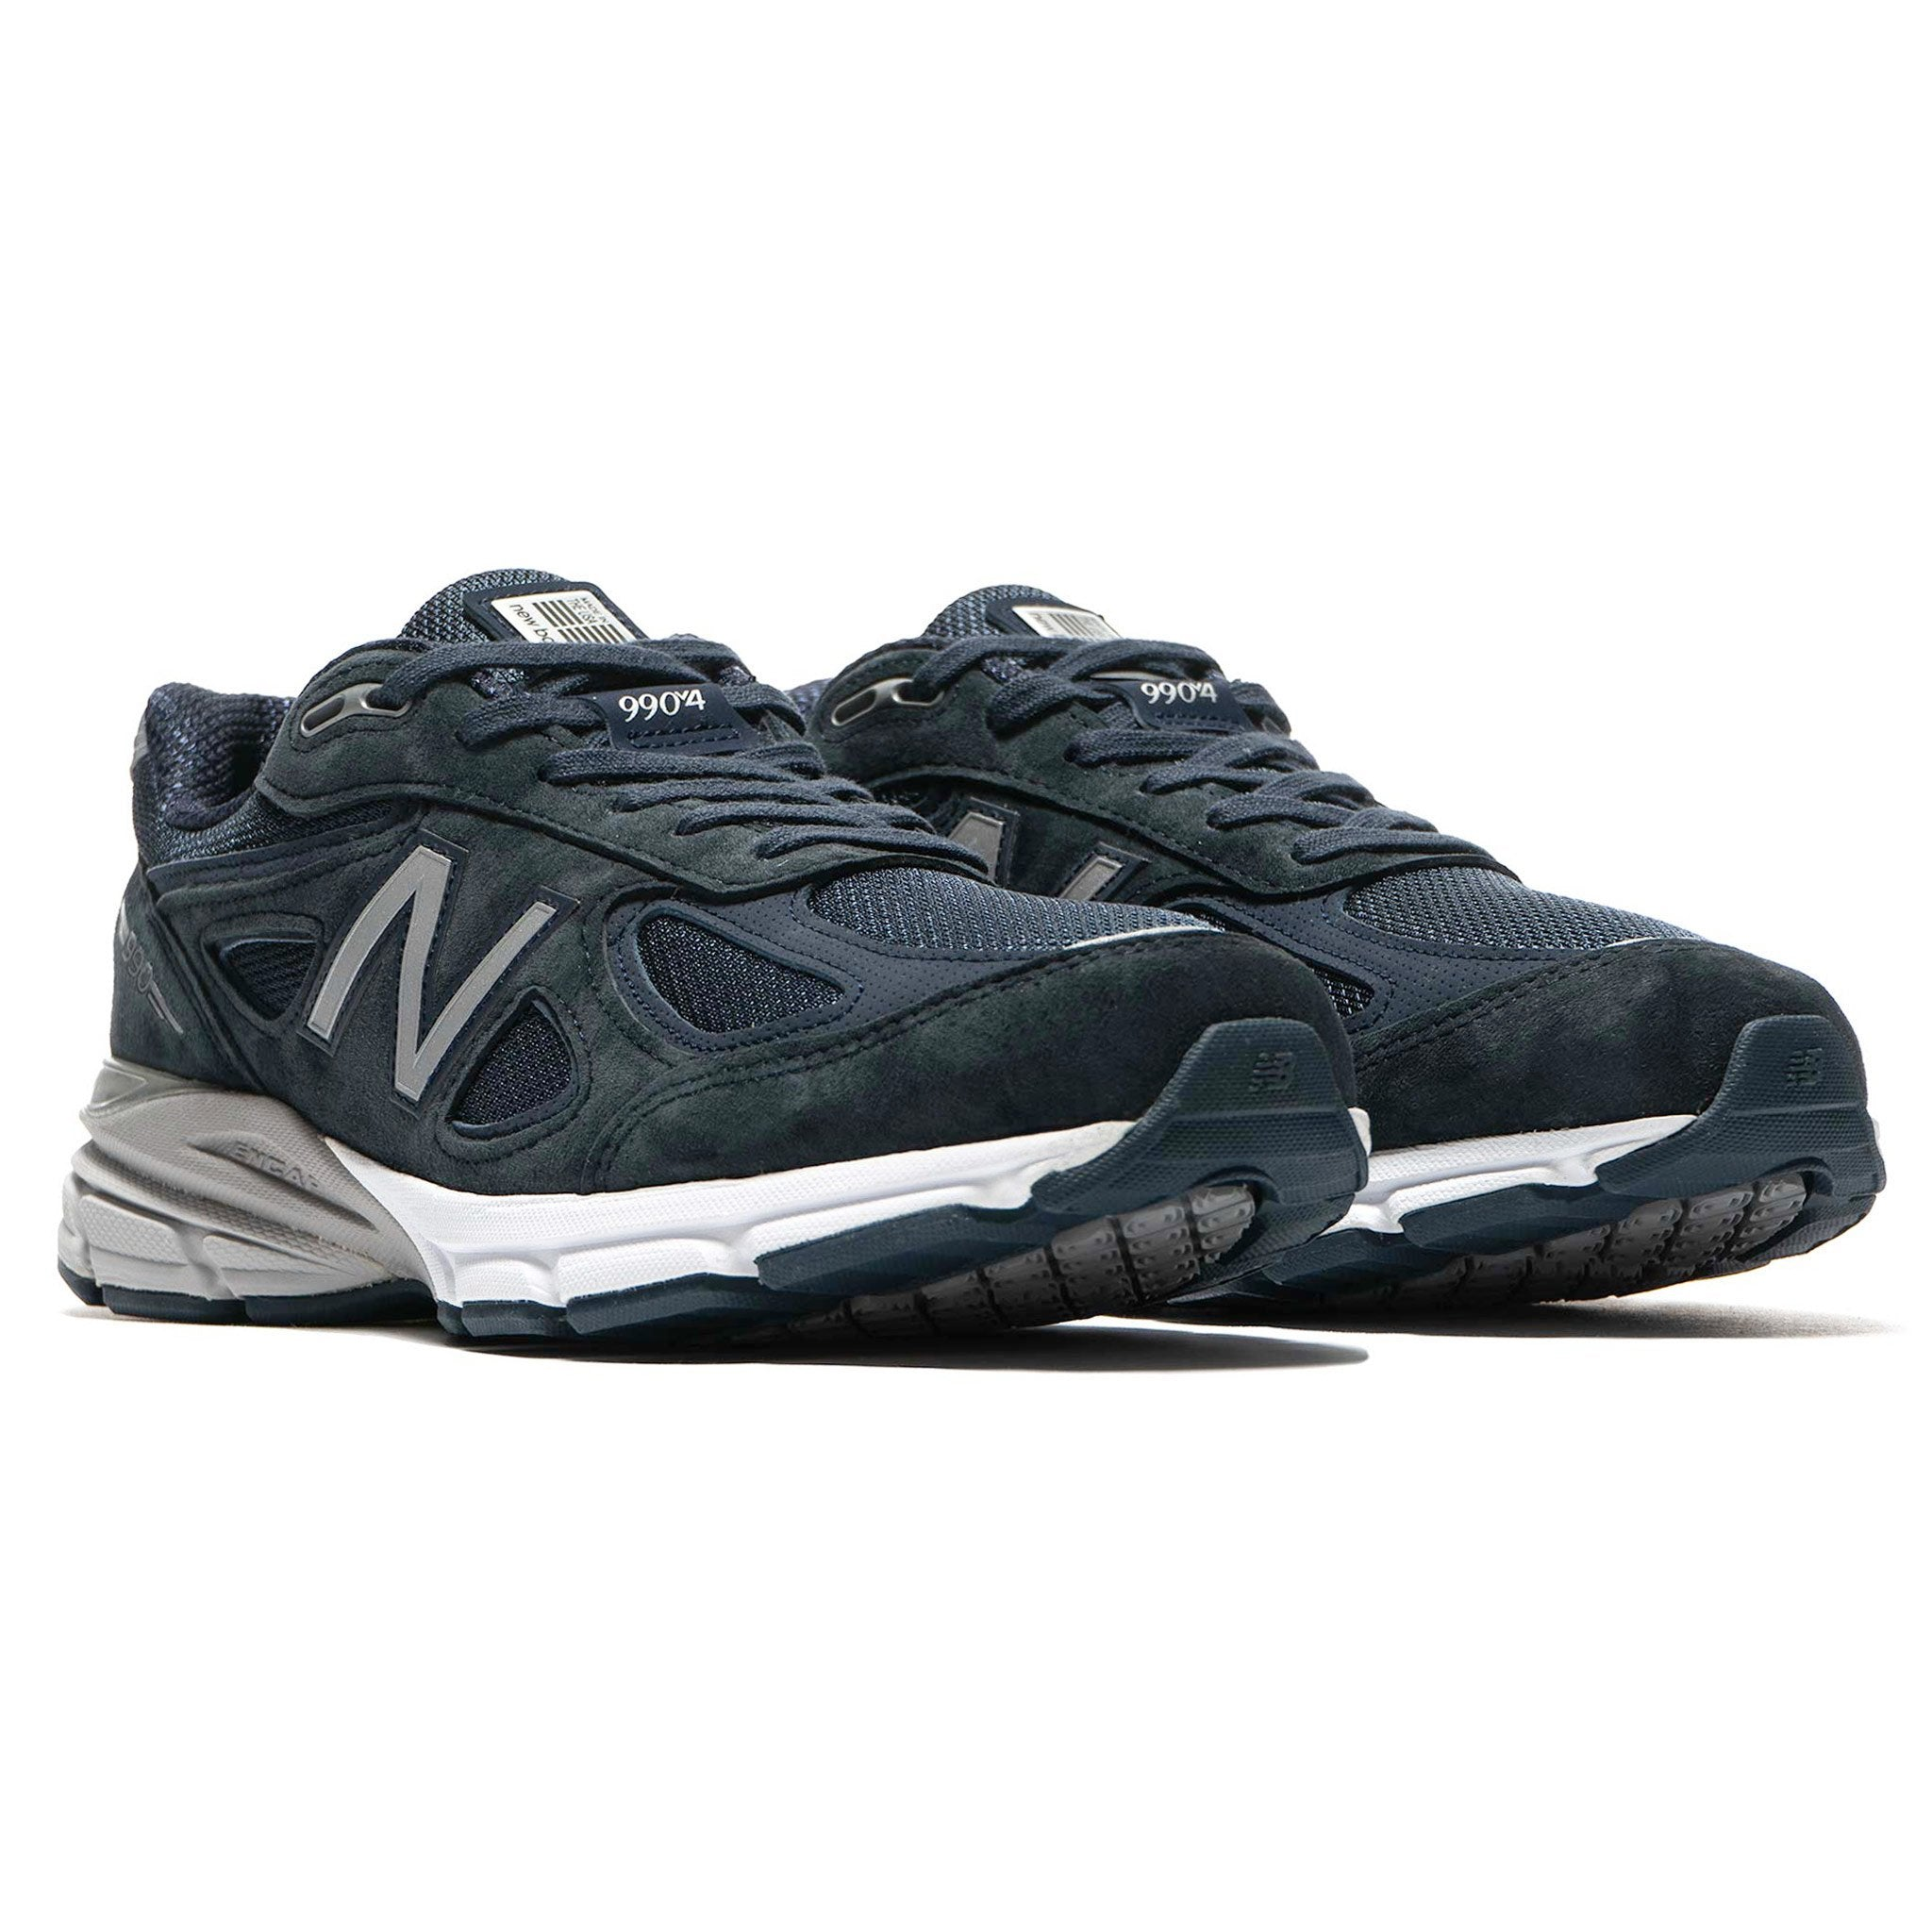 New Balance M990NV4 - Navy